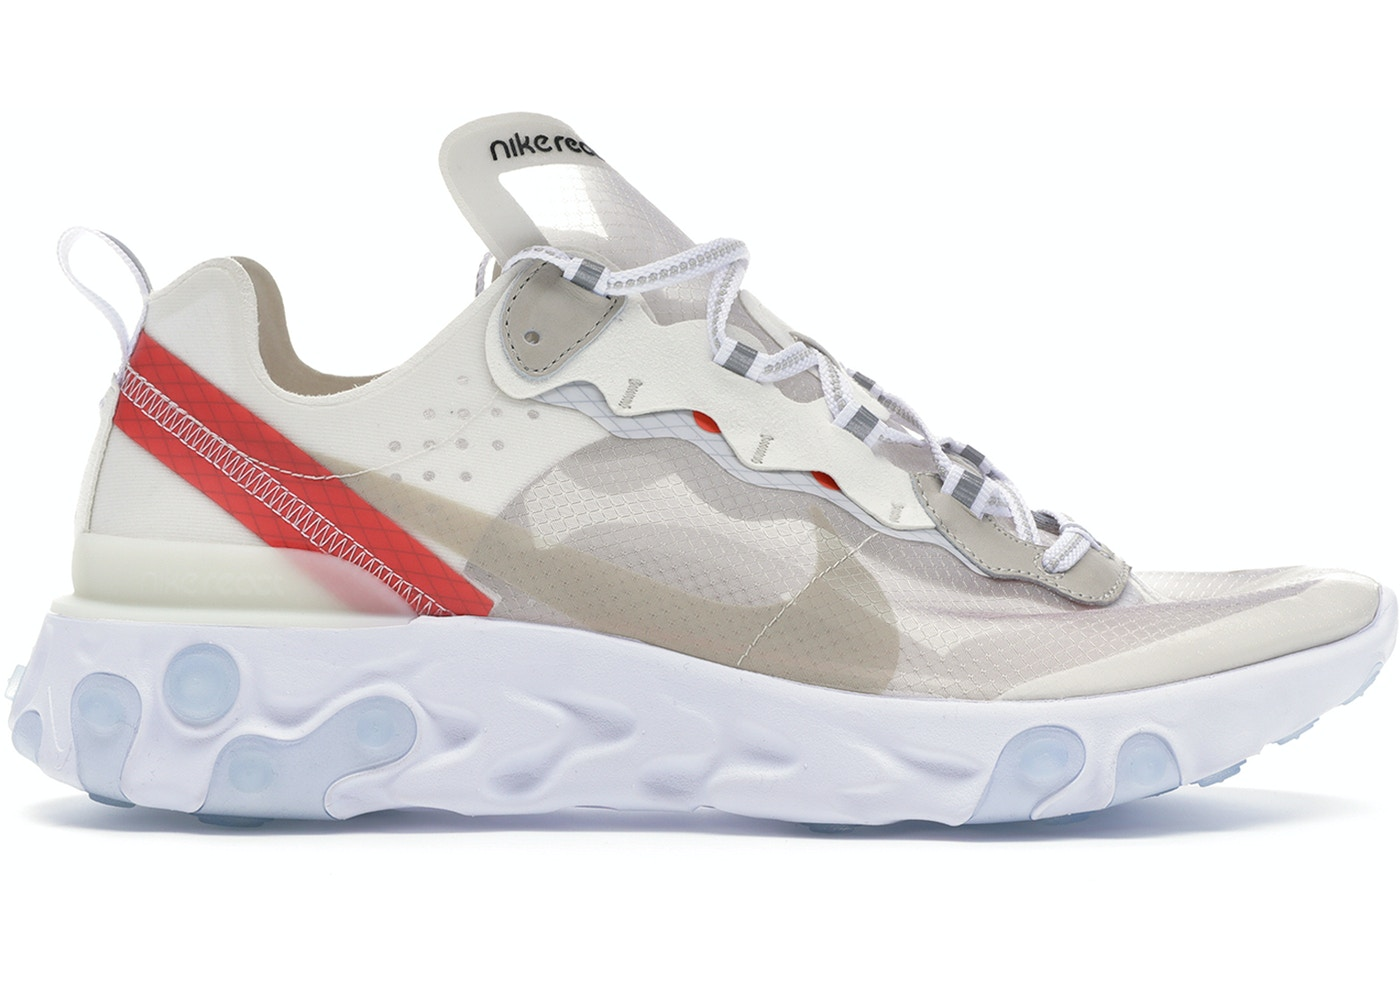 save off efbc1 523fe Nike React Element 87 Sail Light Bone - AQ1090-100